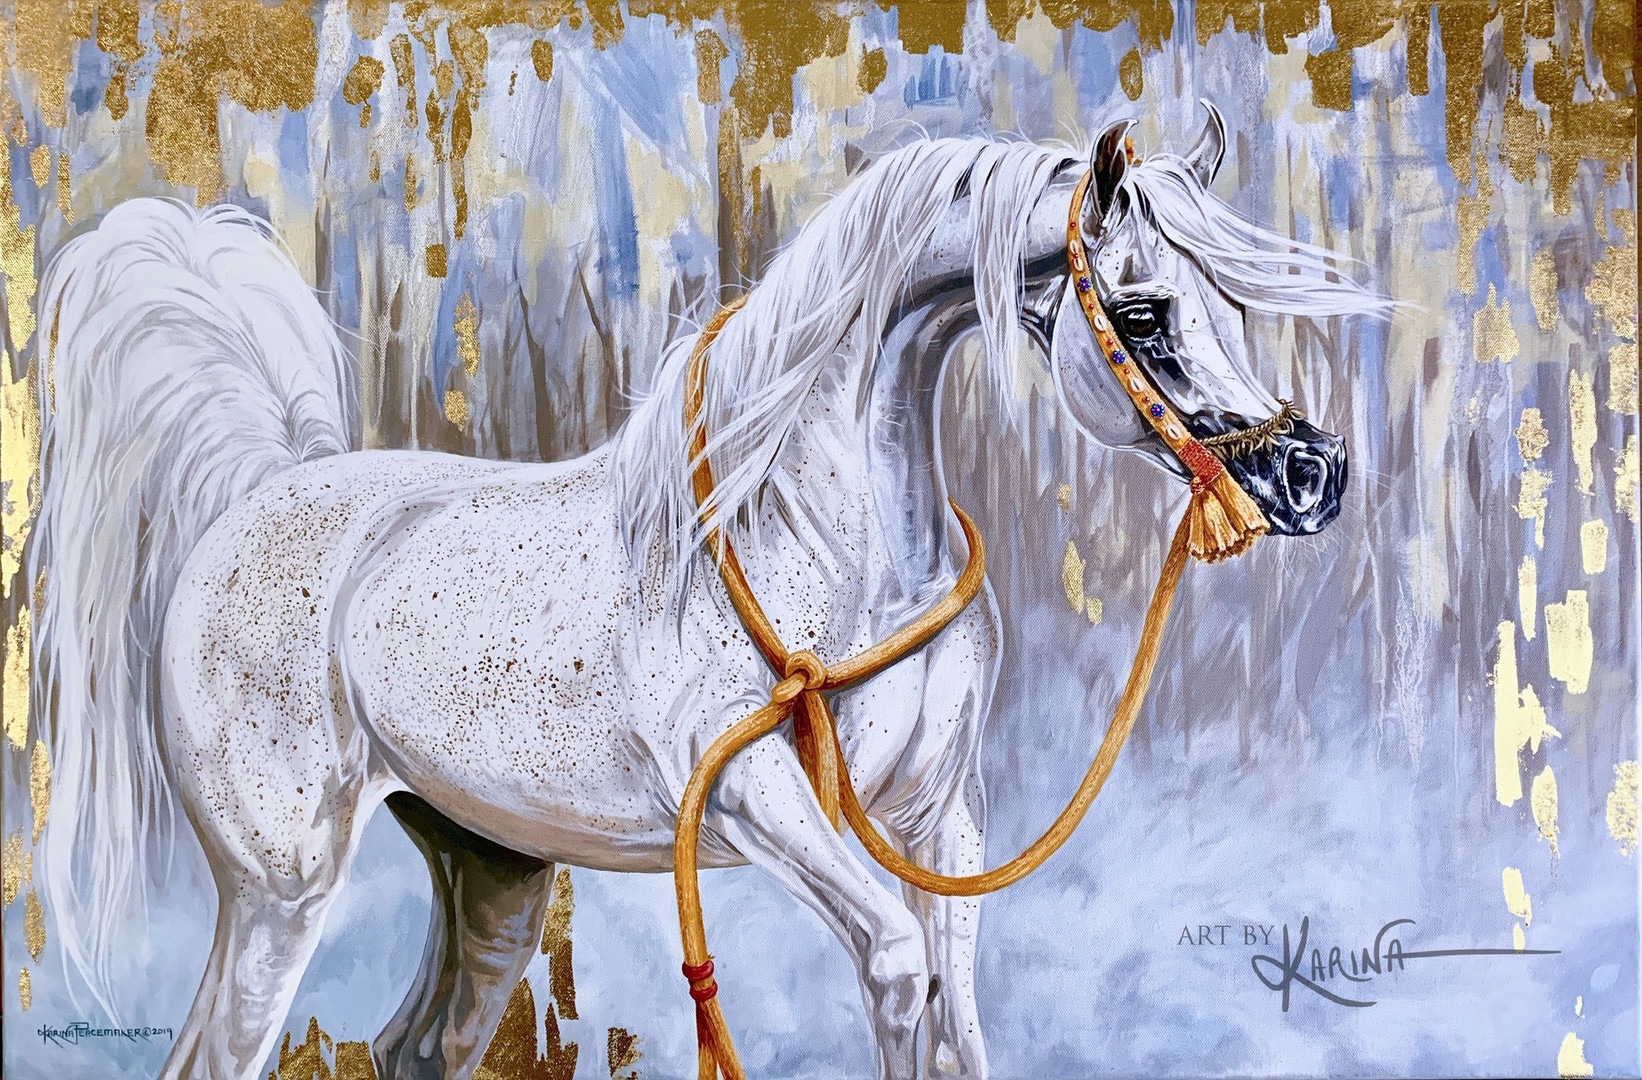 Drops of Gold - Arabian horse oil painting with 22 karat gold leaf by Karina Peacemaker